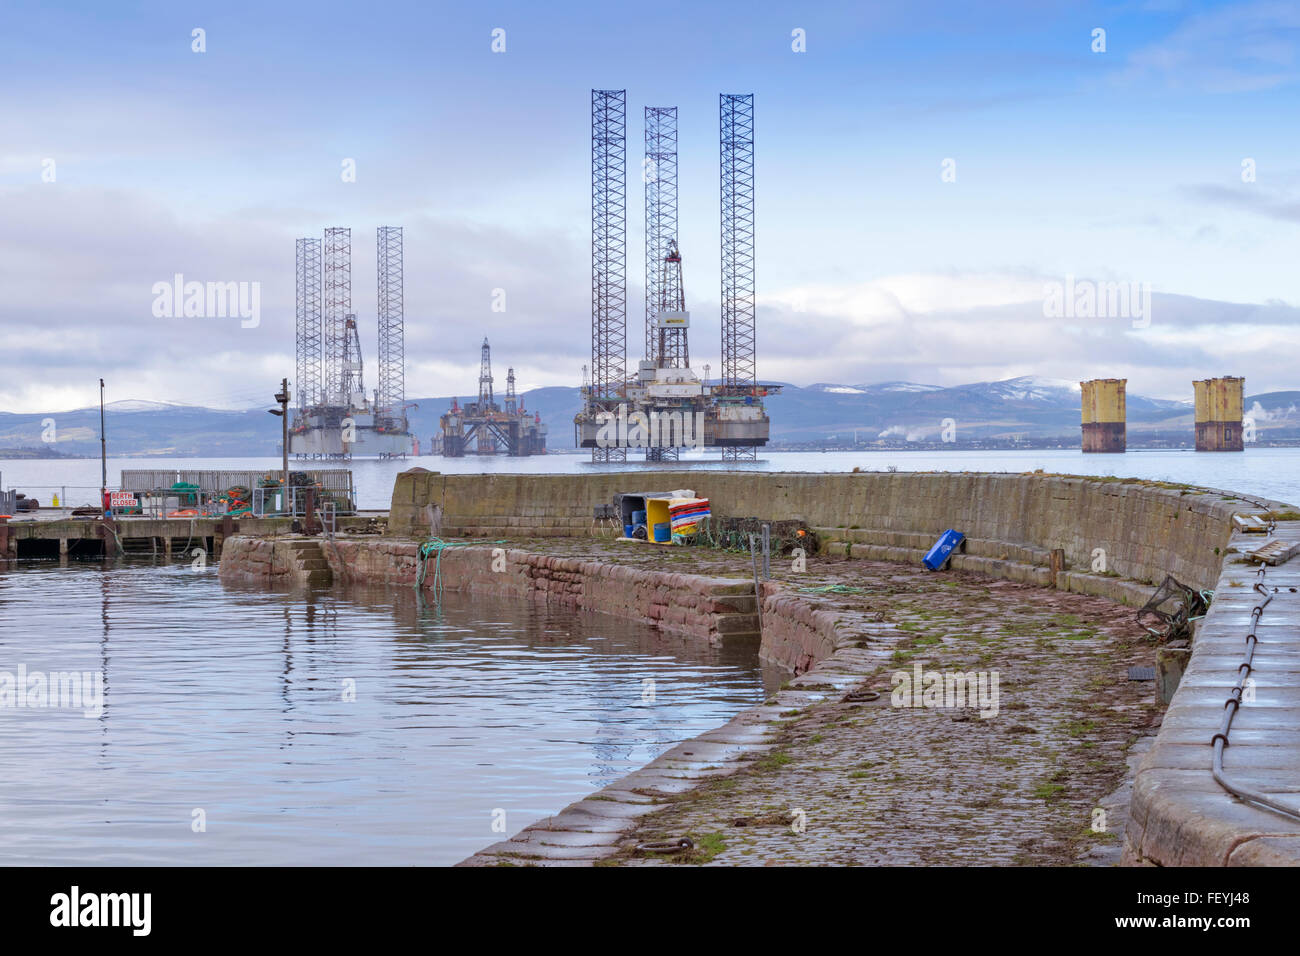 CROMARTY HARBOUR WALLS WITH NORTH SEA OIL RIGS ANCHORED IN THE FIRTH BLACK ISLE SCOTLAND - Stock Image